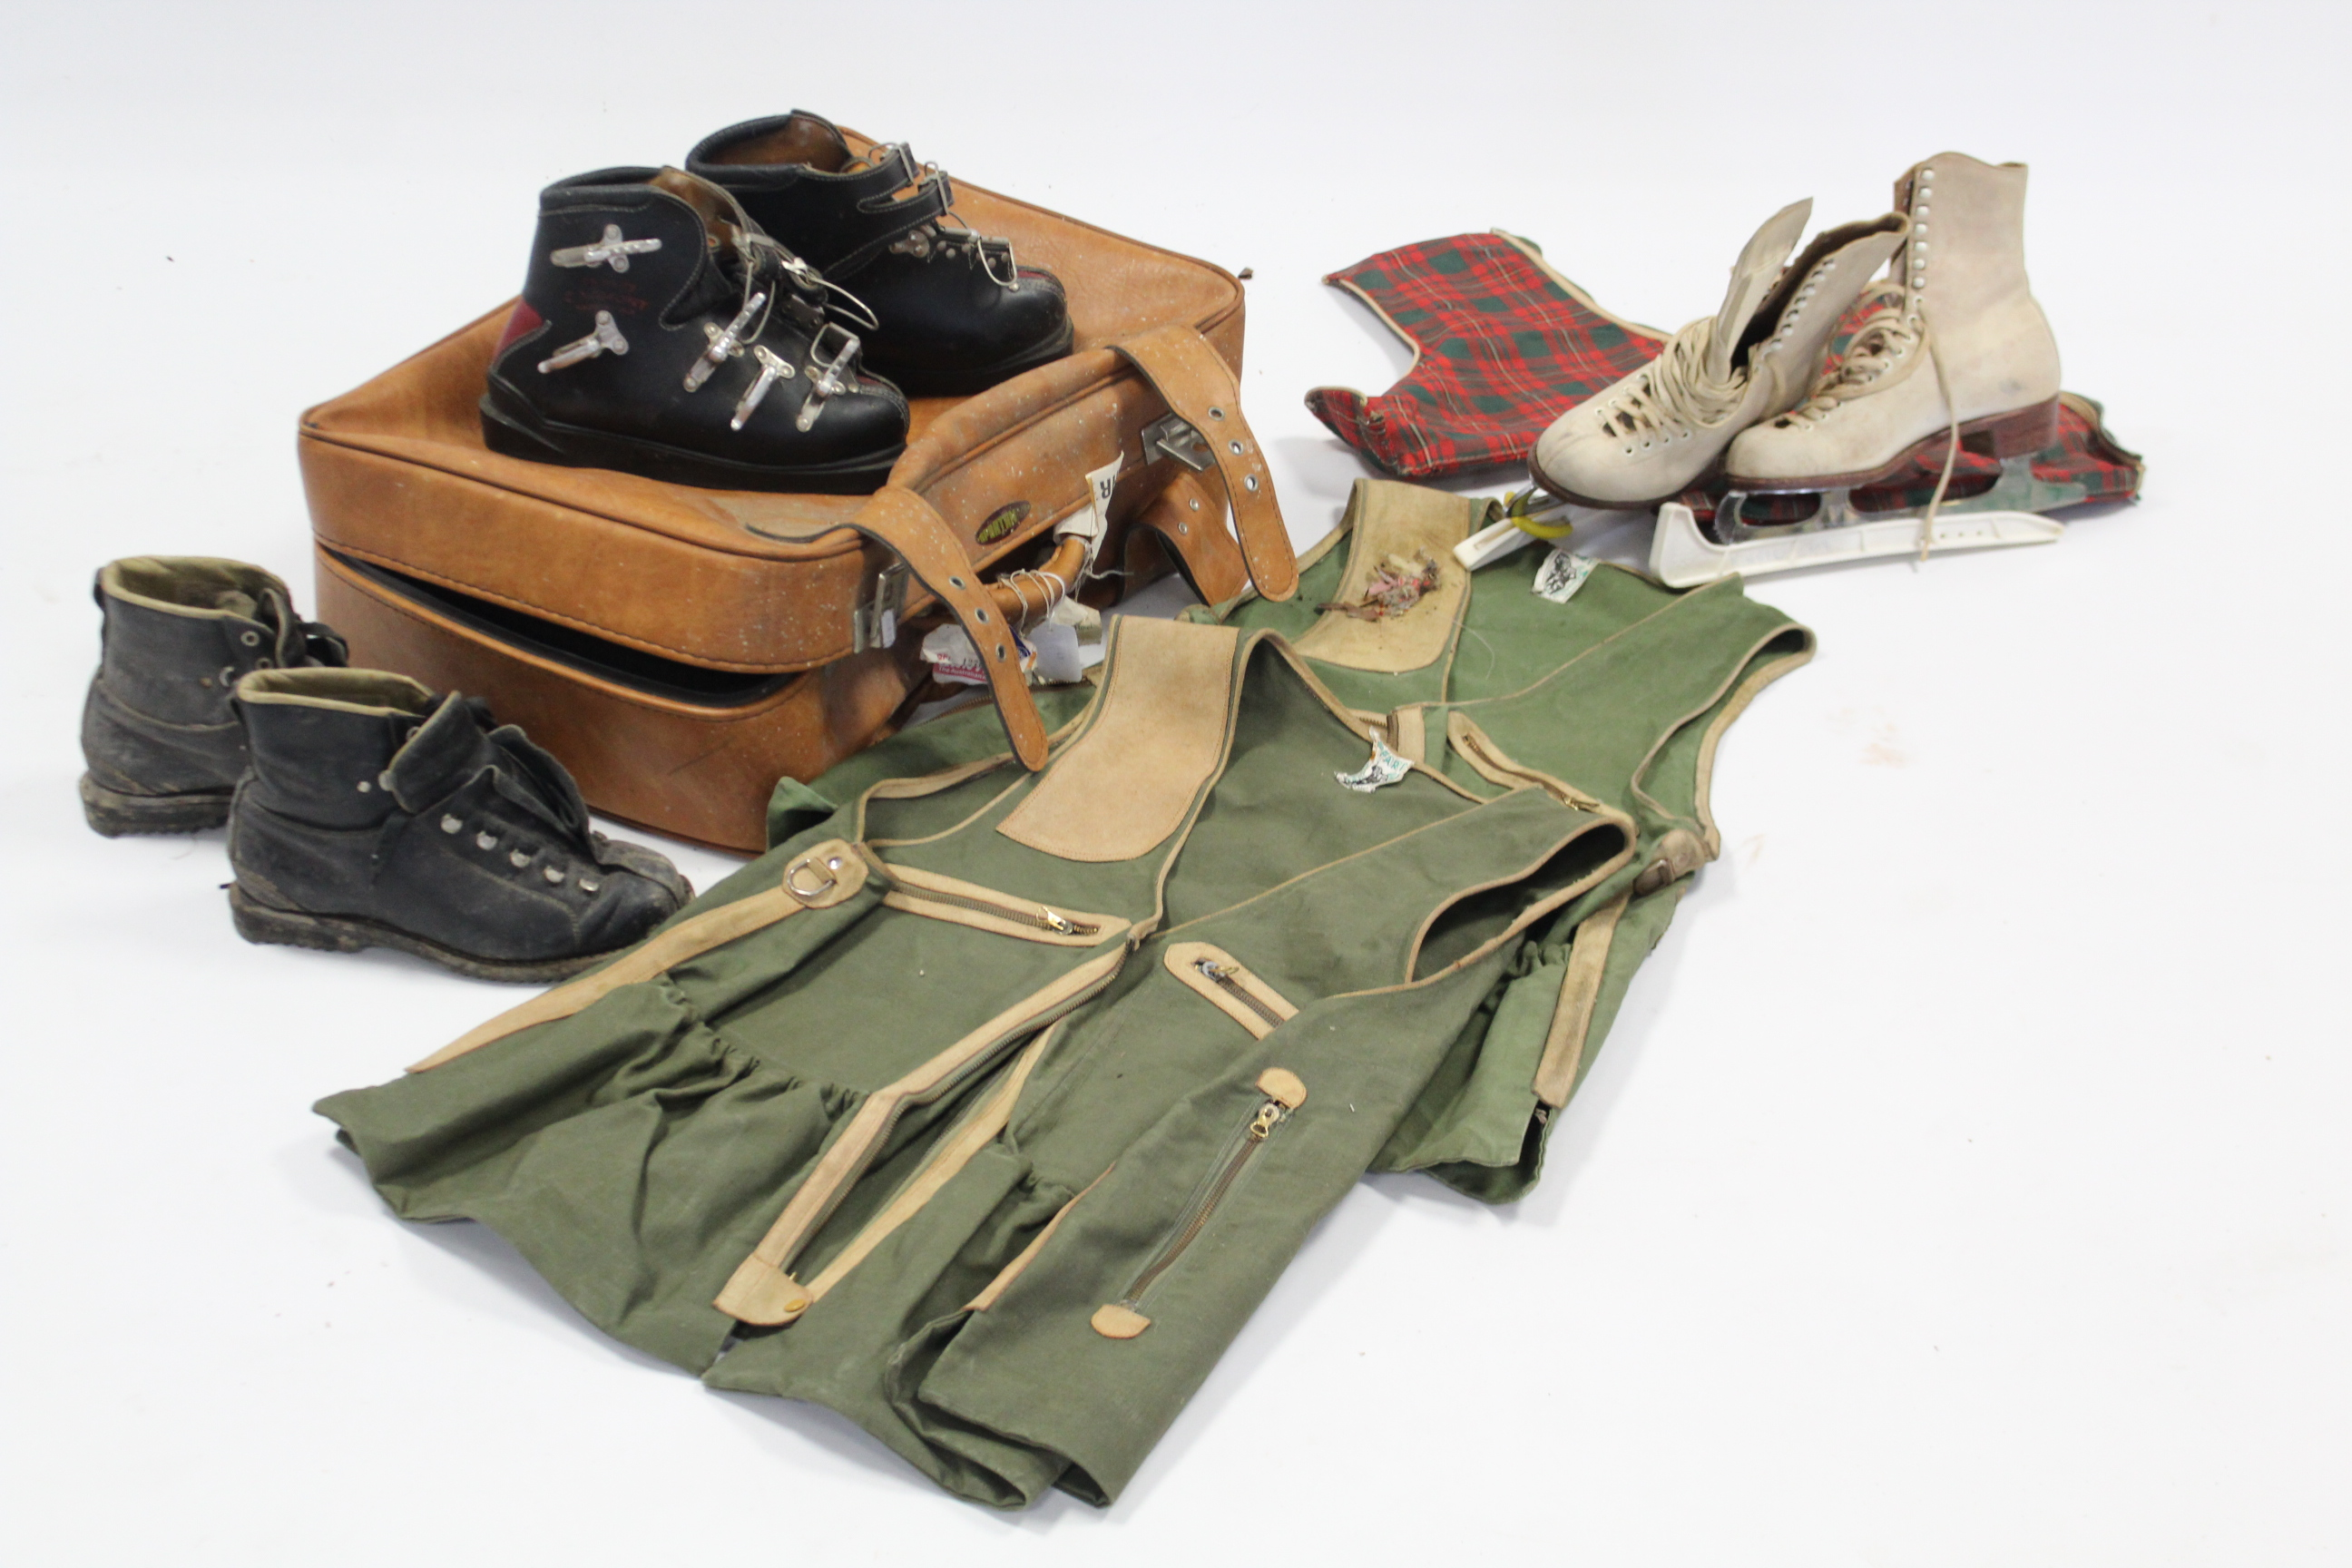 Lot 12 - A pair of Saga ladies ice skates; two pairs of leather ski boots; & two Ghillie's jackets.